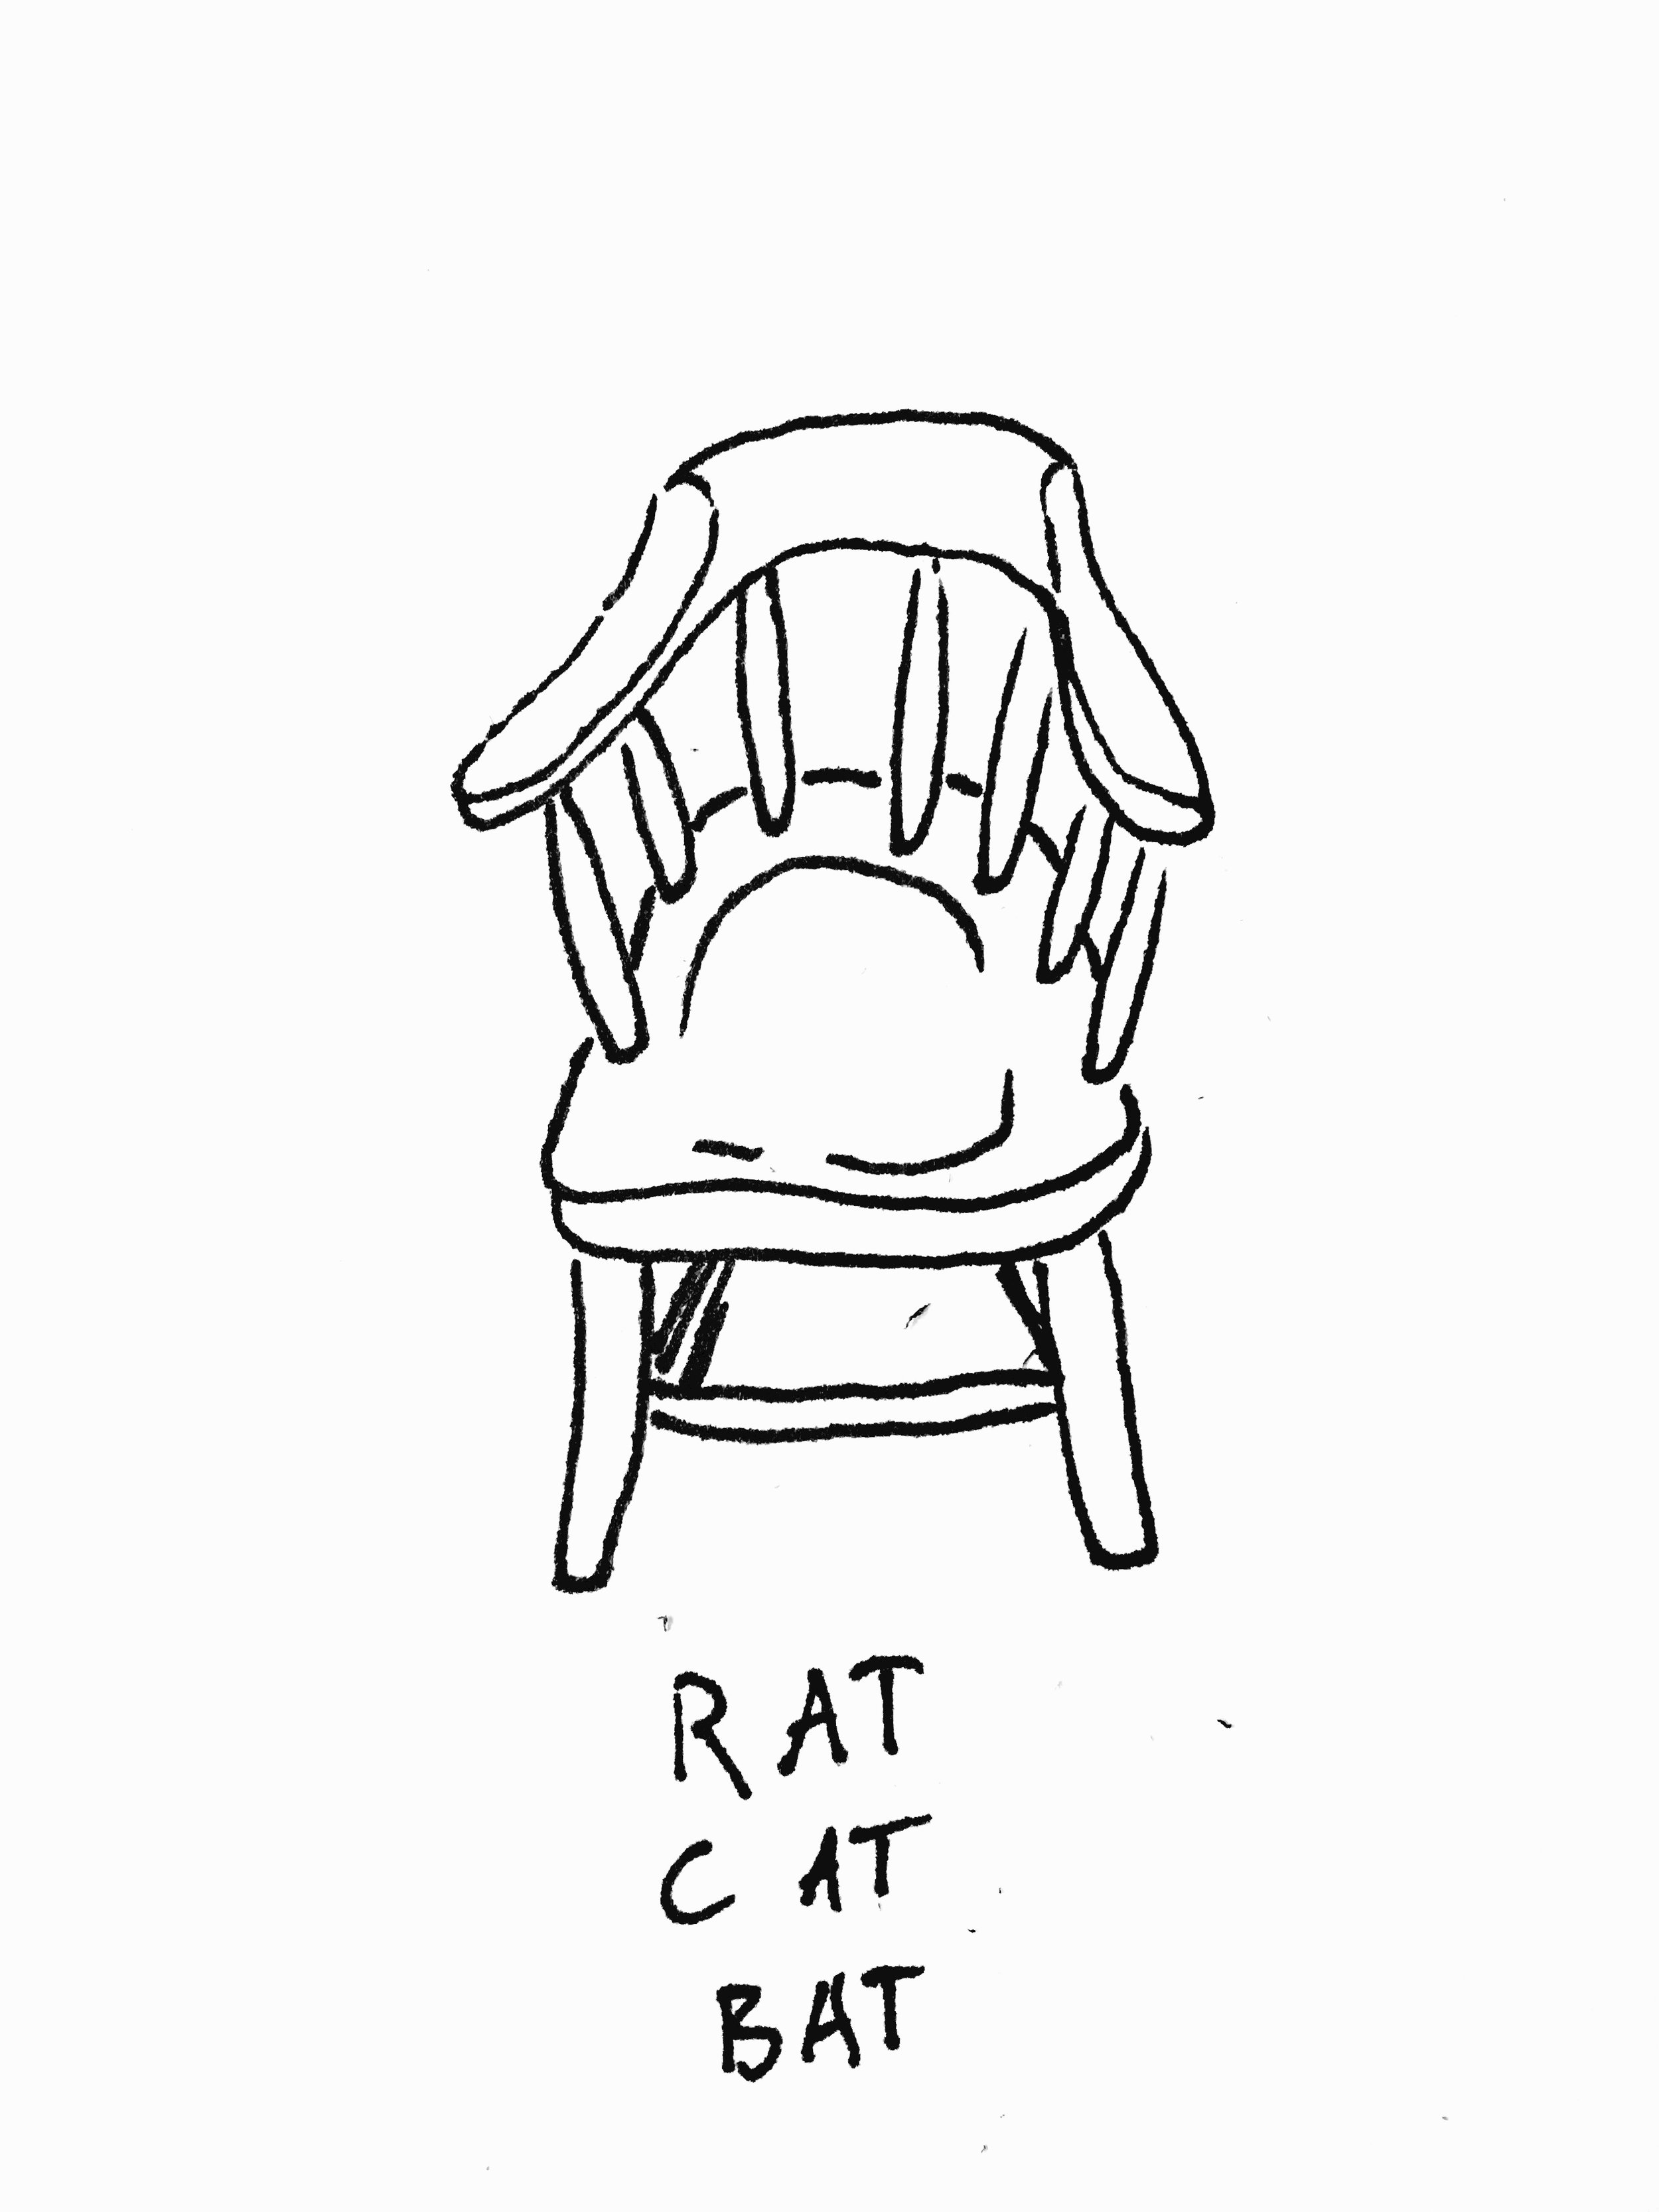 """chair: rat cat bat"" (June 4, 2017)"